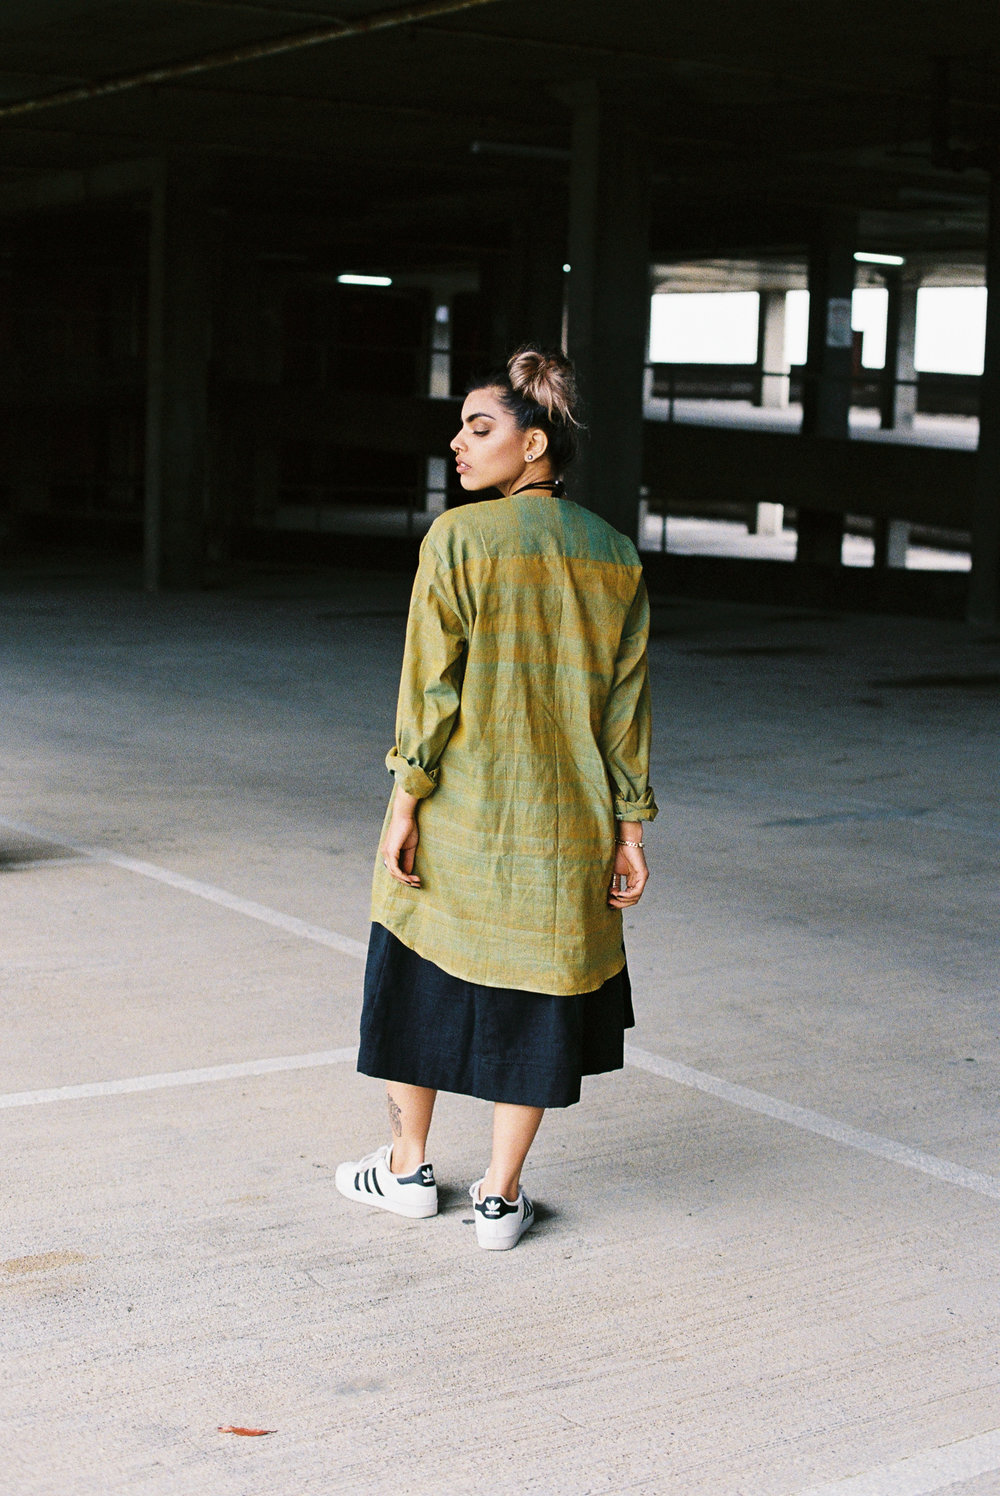 greenshirtdress-2.jpg